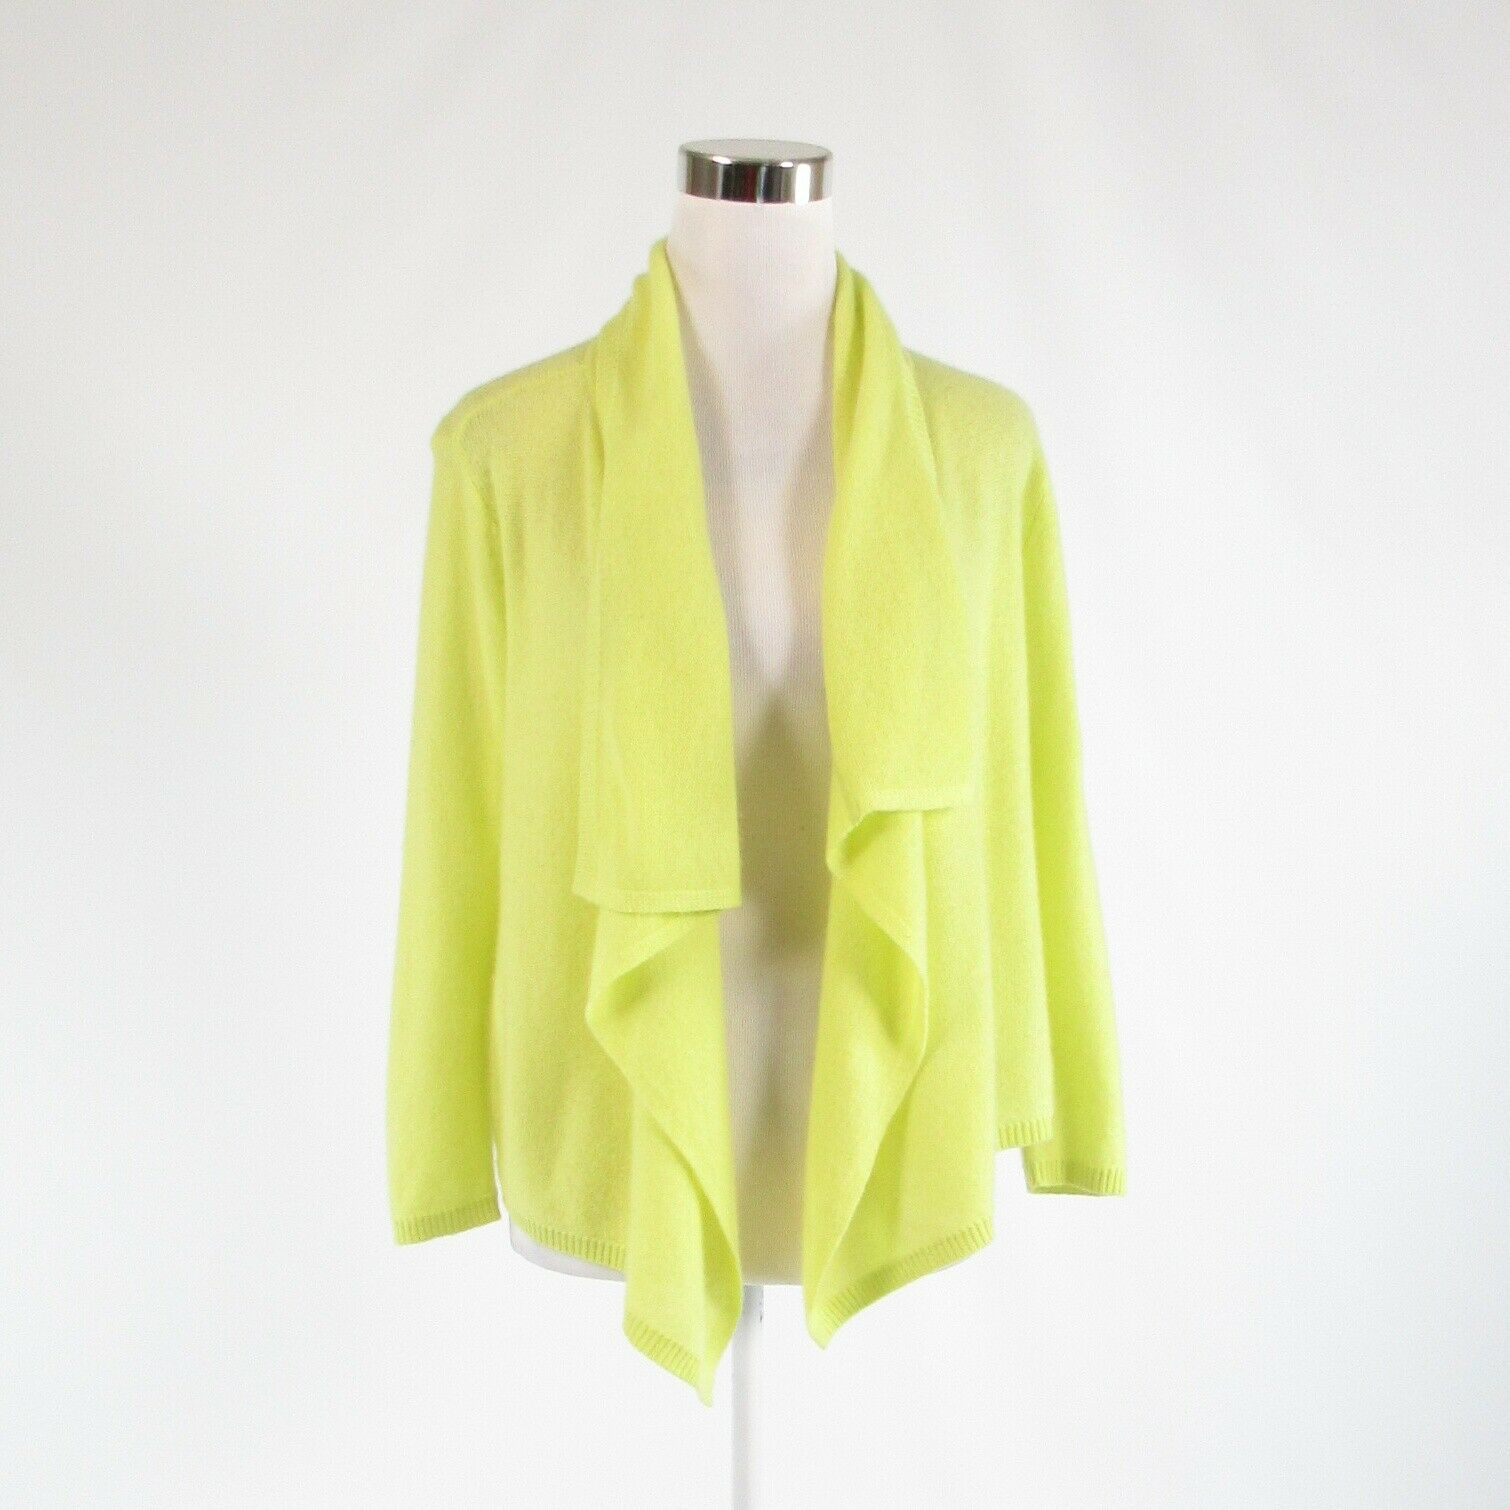 Primary image for Light neon yellow 100% cashmere MAGASCHONI 3/4 sleeve swing sweater M